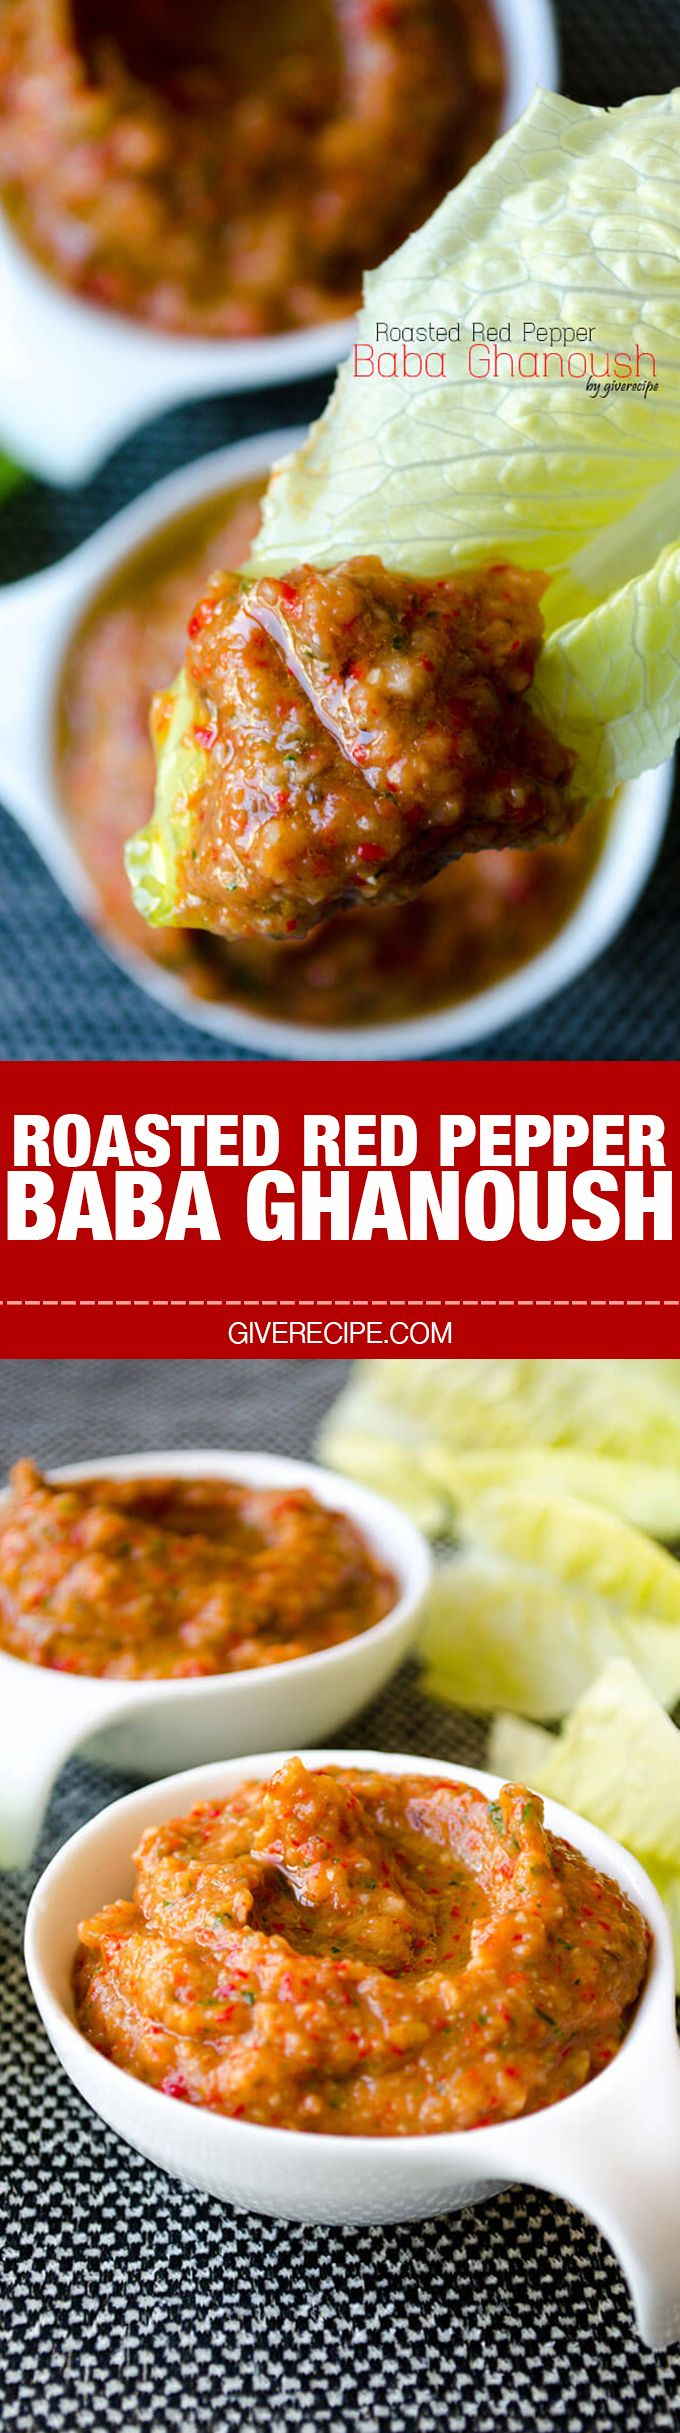 Tangy and garlicy roasted red pepper baba ghanoush makes a wonderful light snack… – Tracey Chan Design